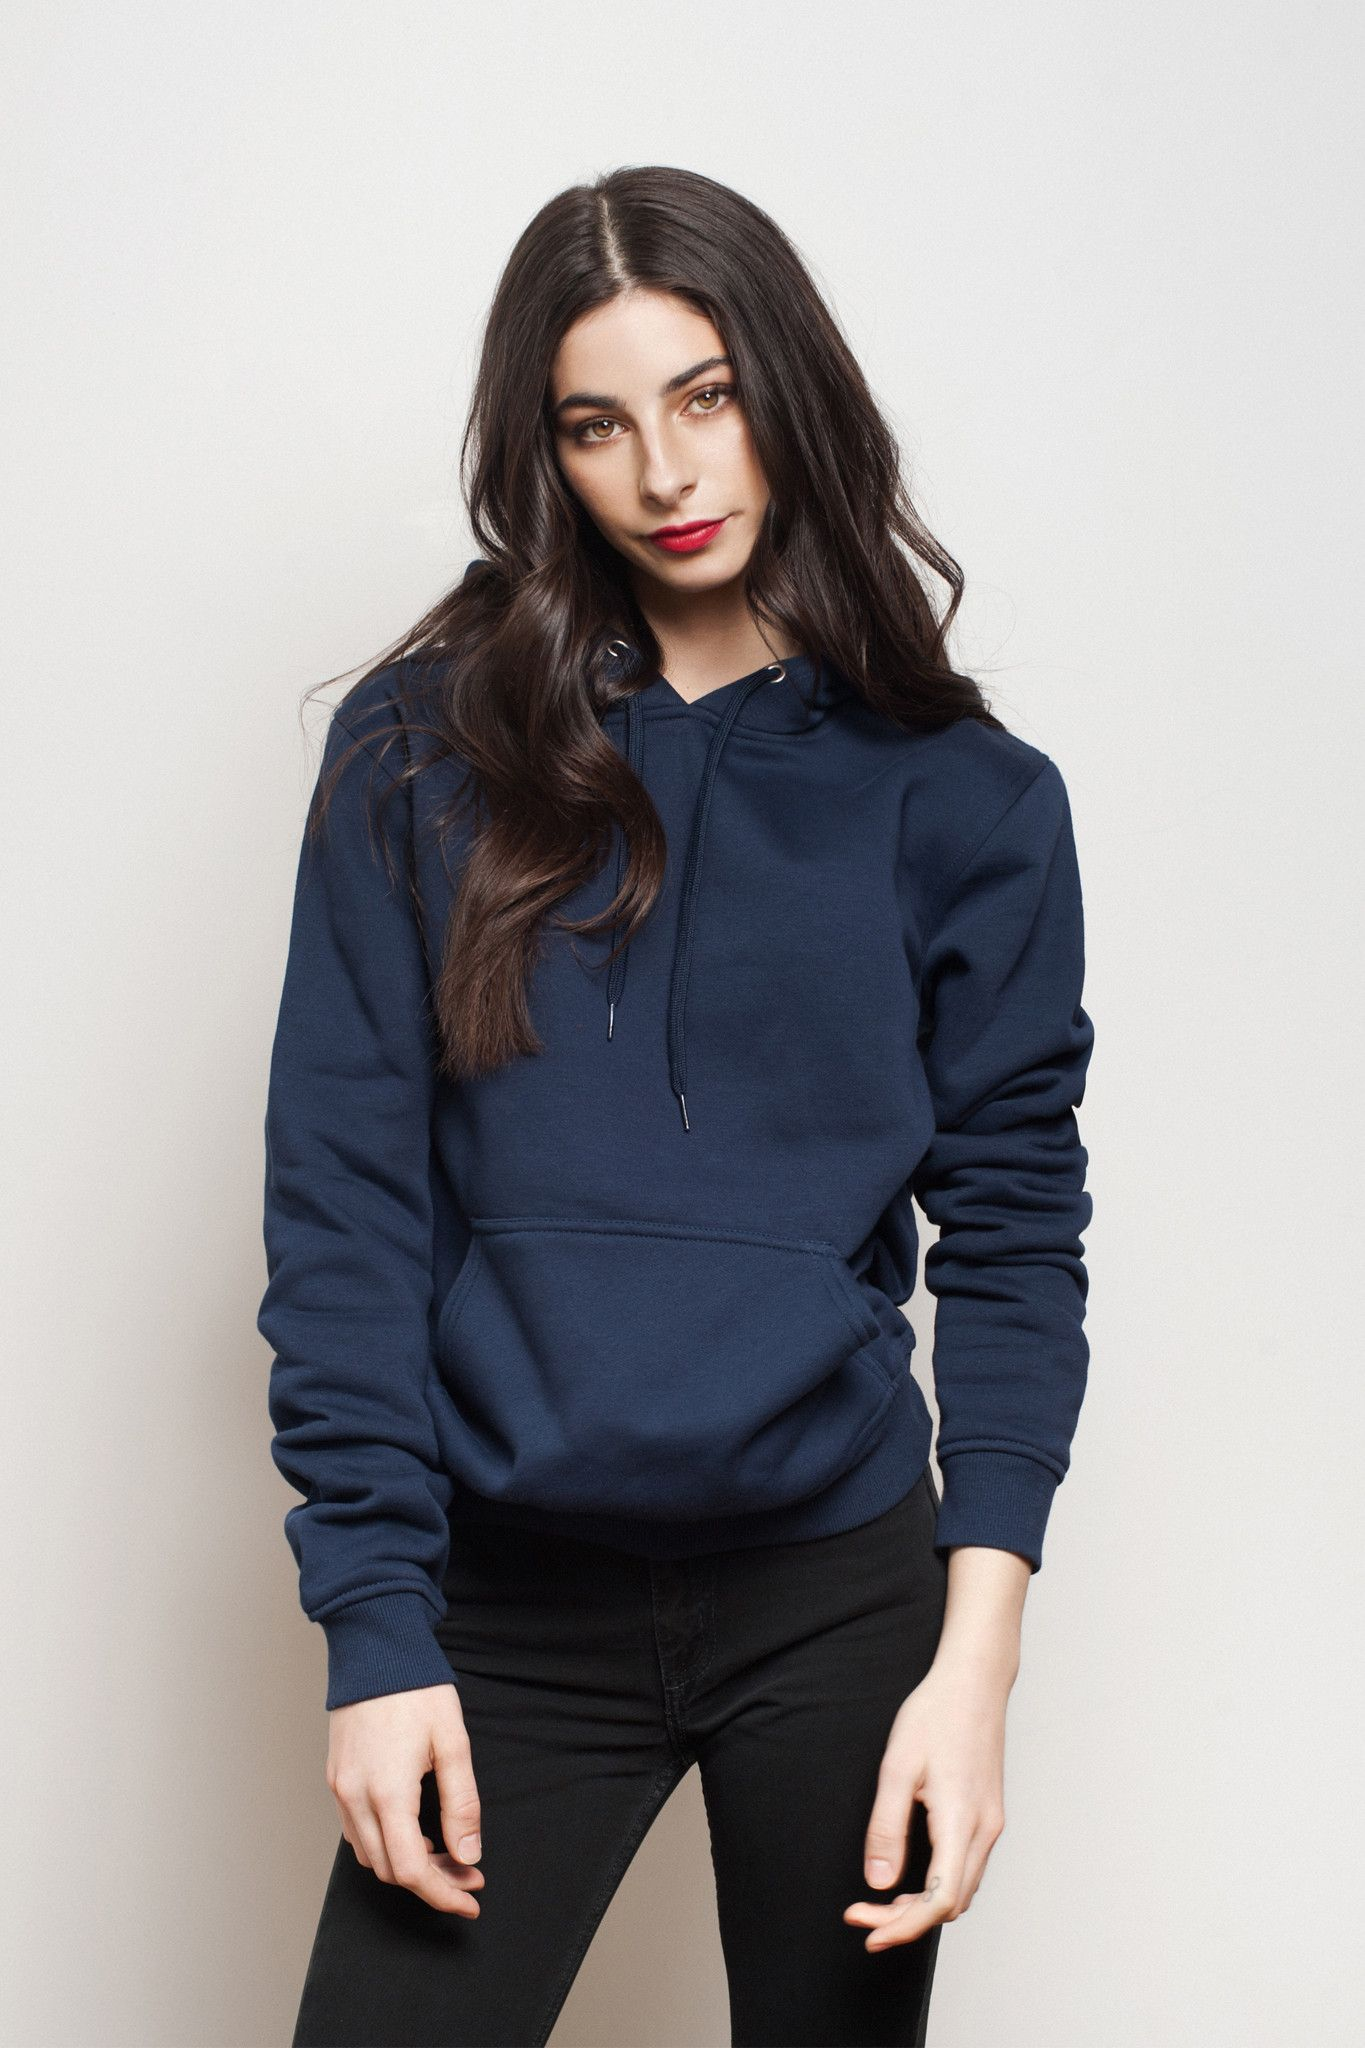 Women Navy Blue Fleece Pullover Hoodie. Breathable in the summer and warm  in the winter. Simple and casual style for an everyday outfit. 175adb9574